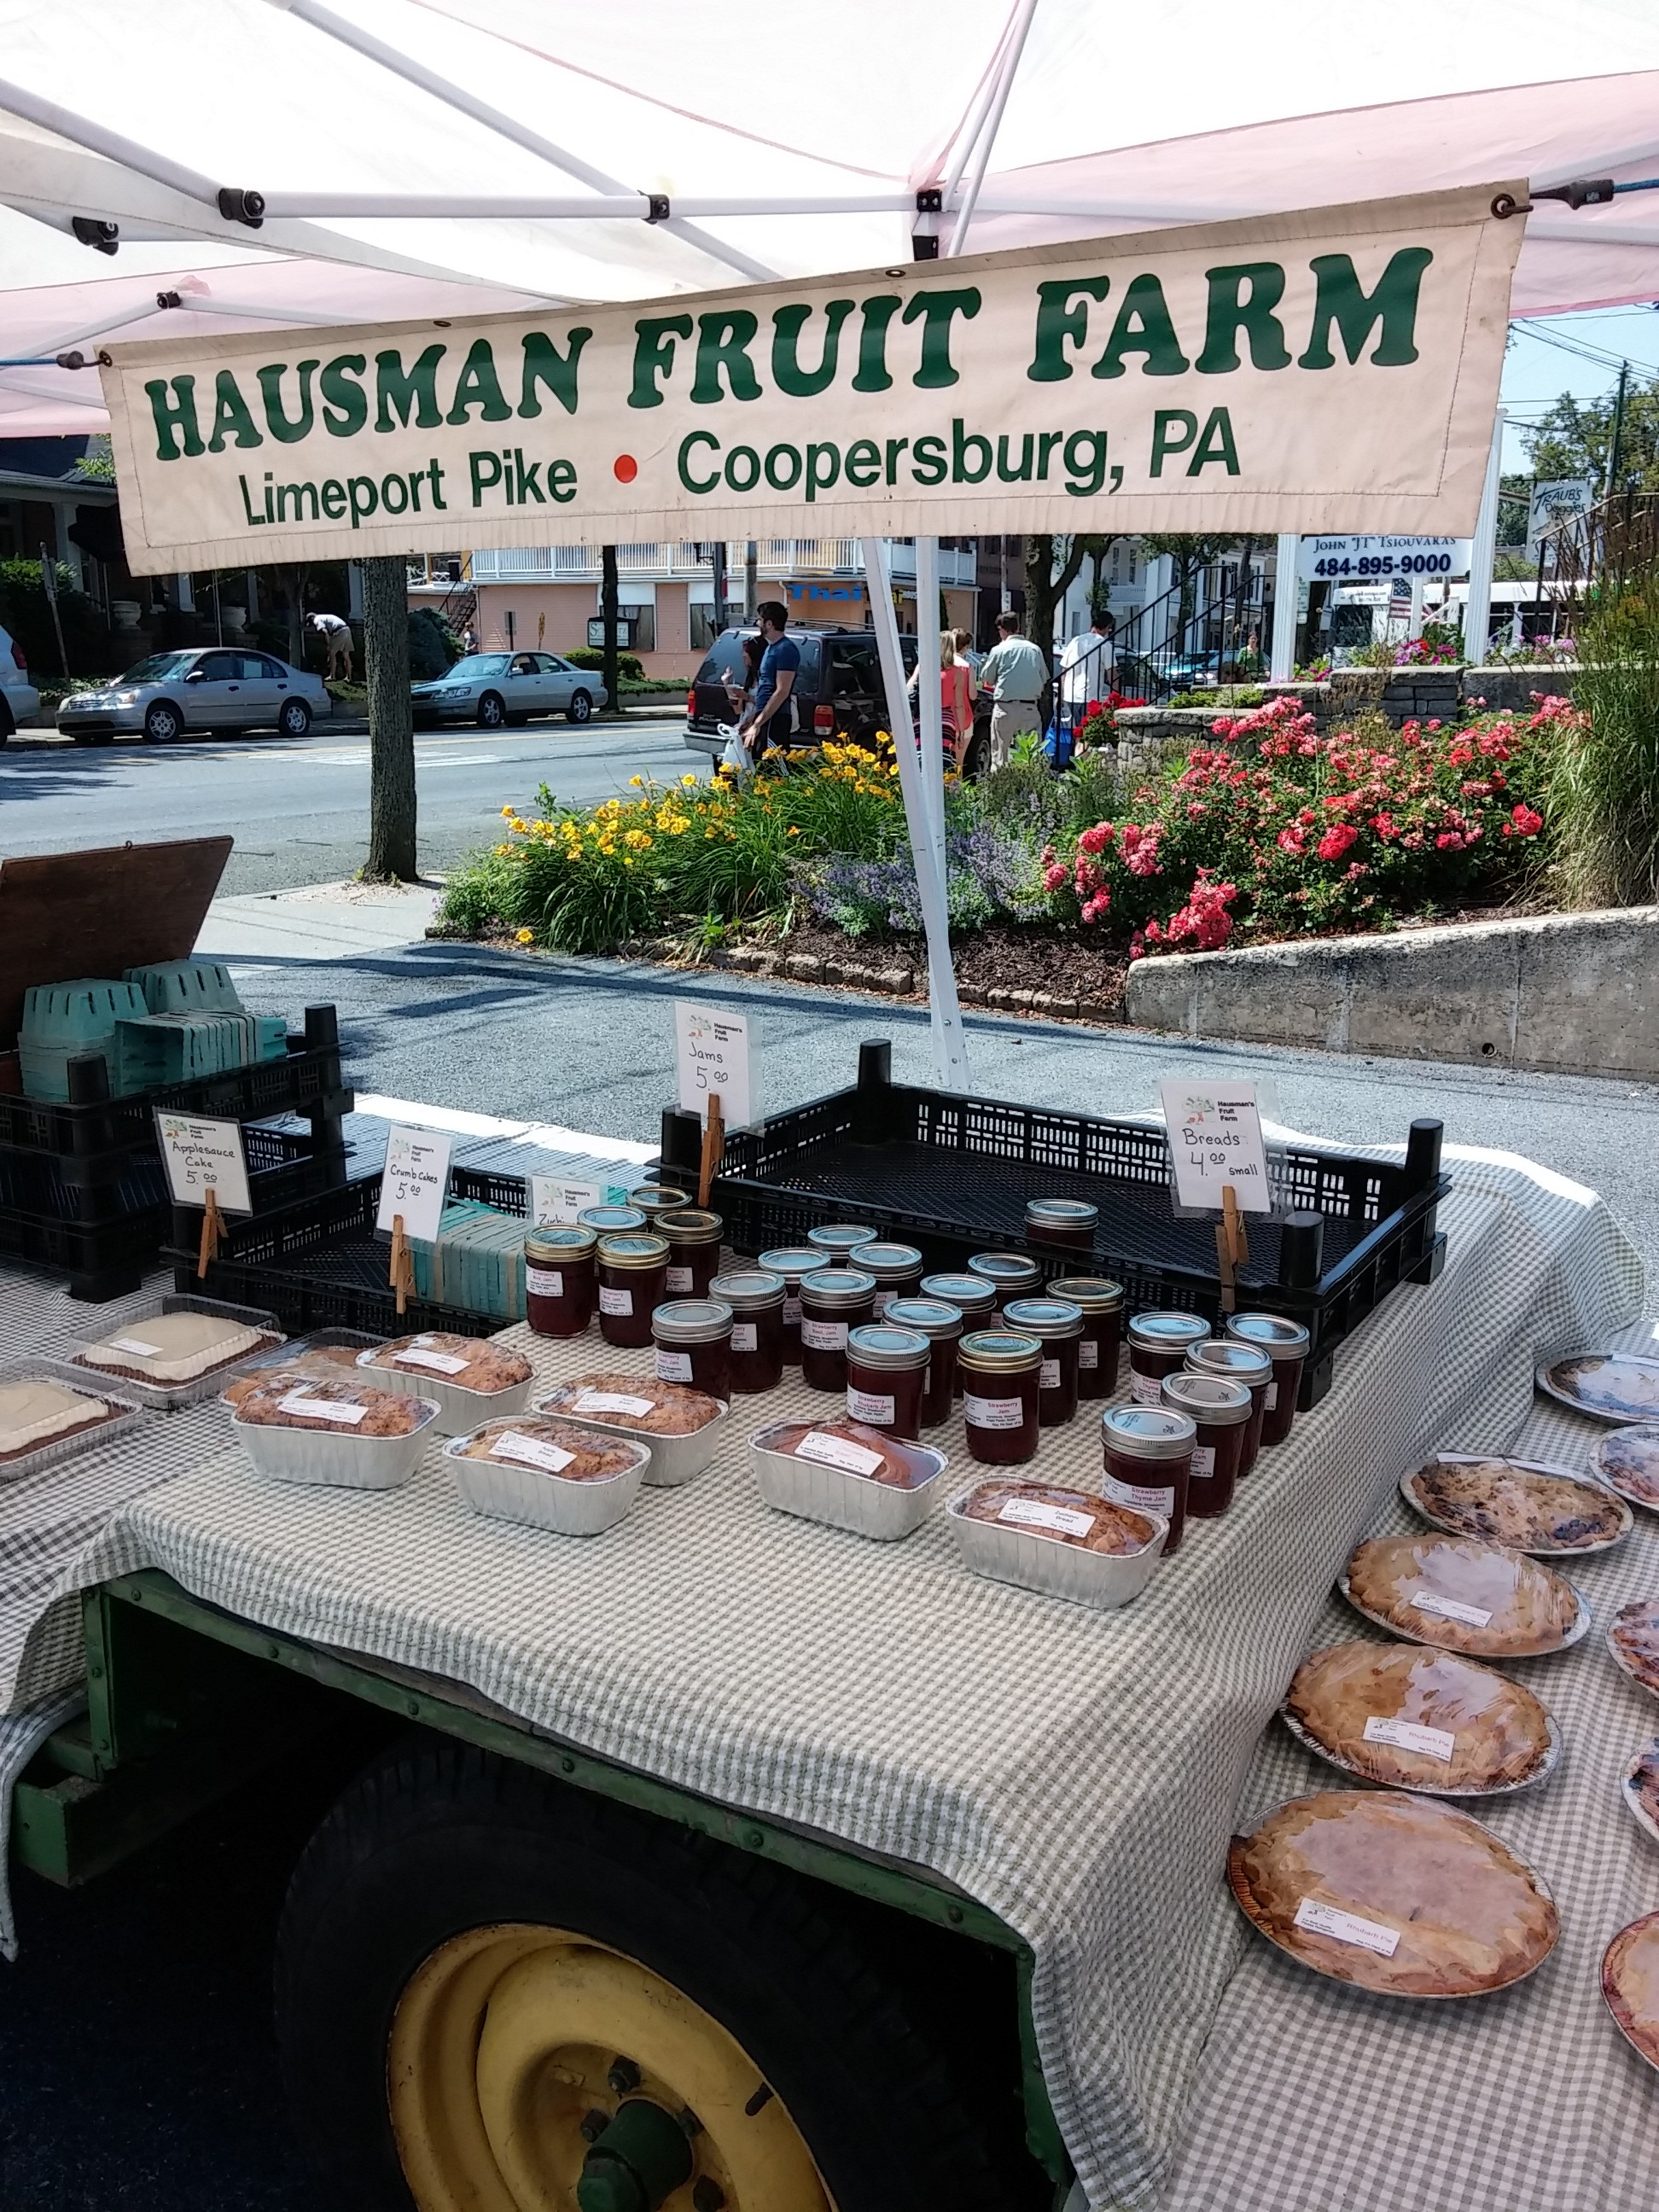 Hausman Fruit Farm